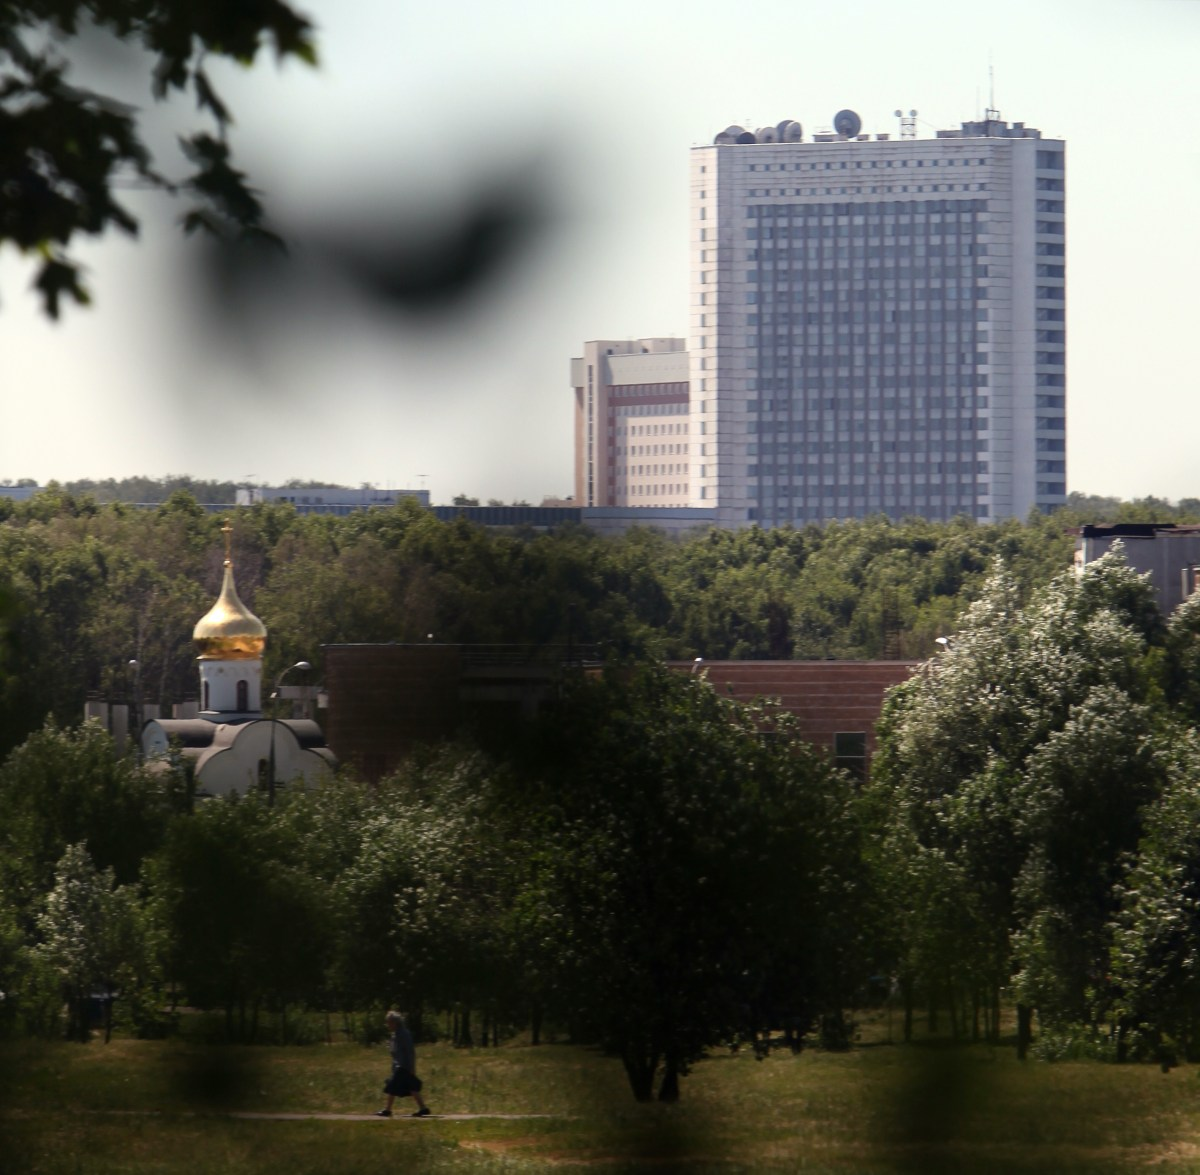 A distant view of Russia's foreign intelligence service compound.